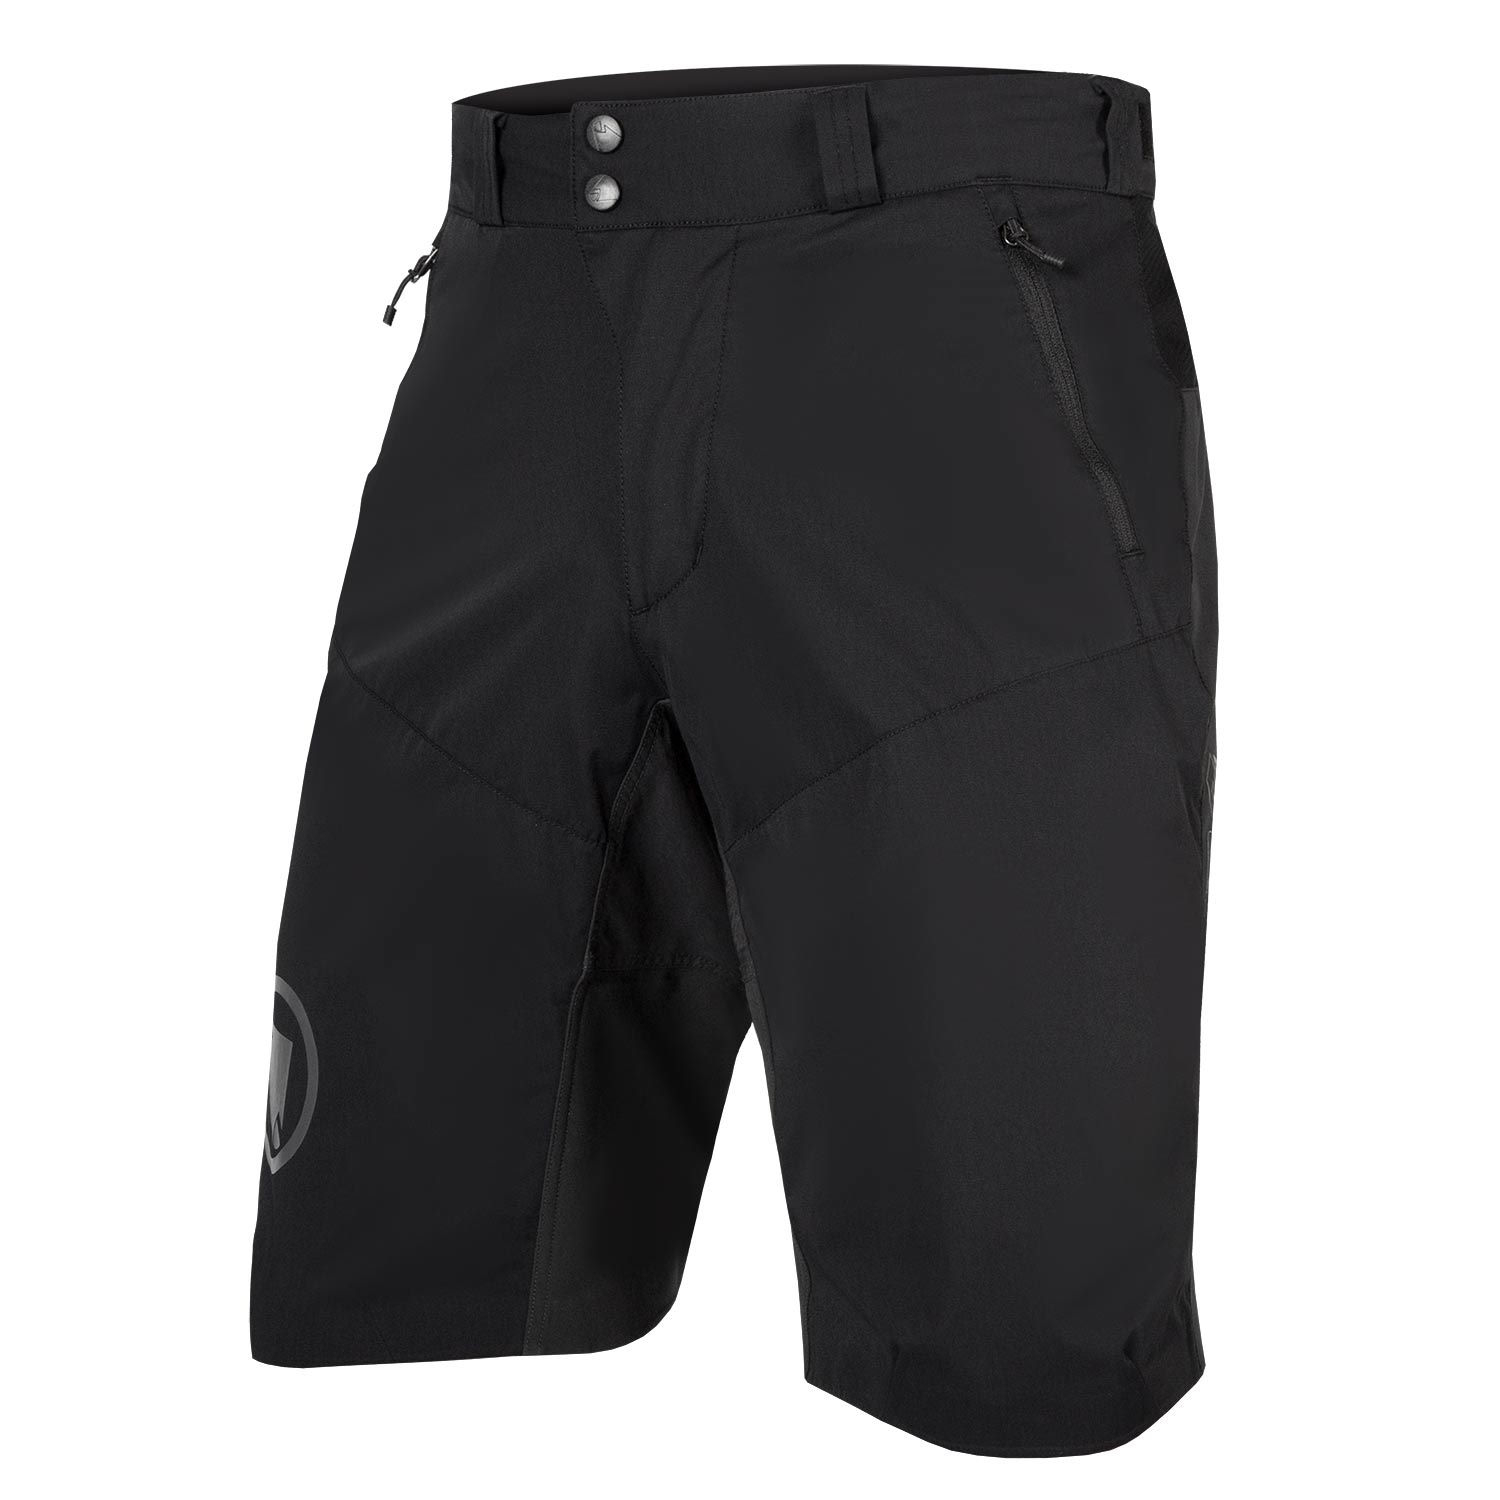 | Endura MTB fietsbroek kort waterafstotend Heren Zwart - MT500 Spray Short Zwart